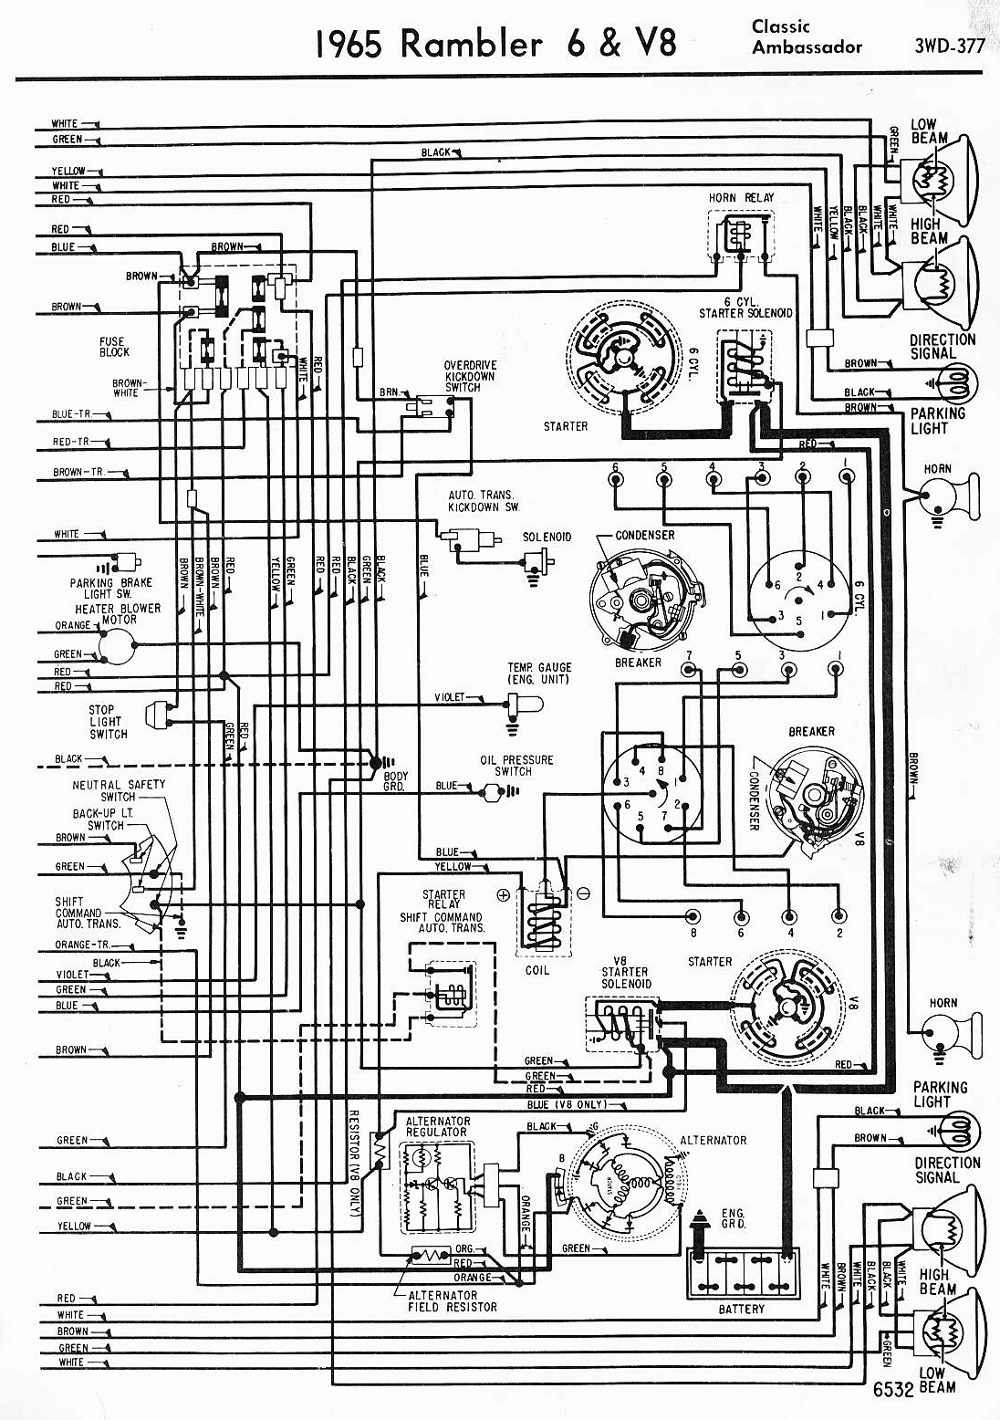 Uc torana wiring diagram the office mapping software